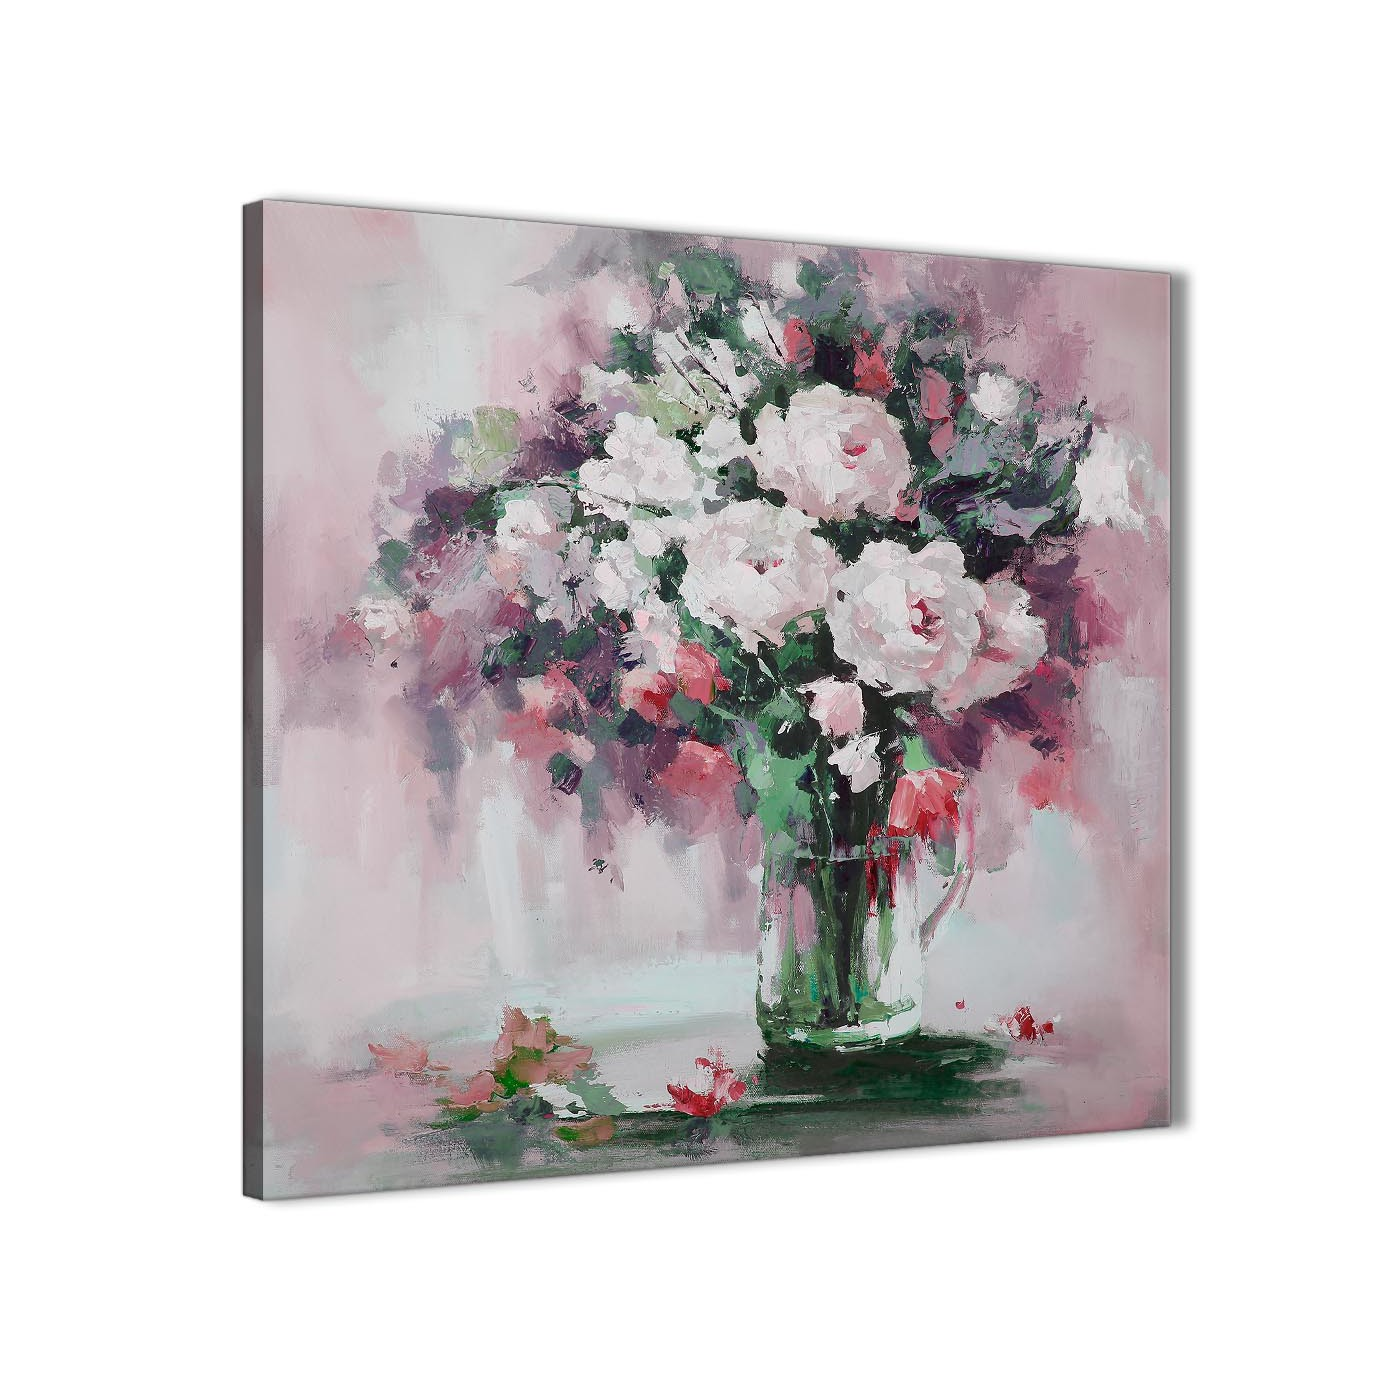 Blush pink flowers painting abstract office canvas pictures accessories 1s441l 79cm square print